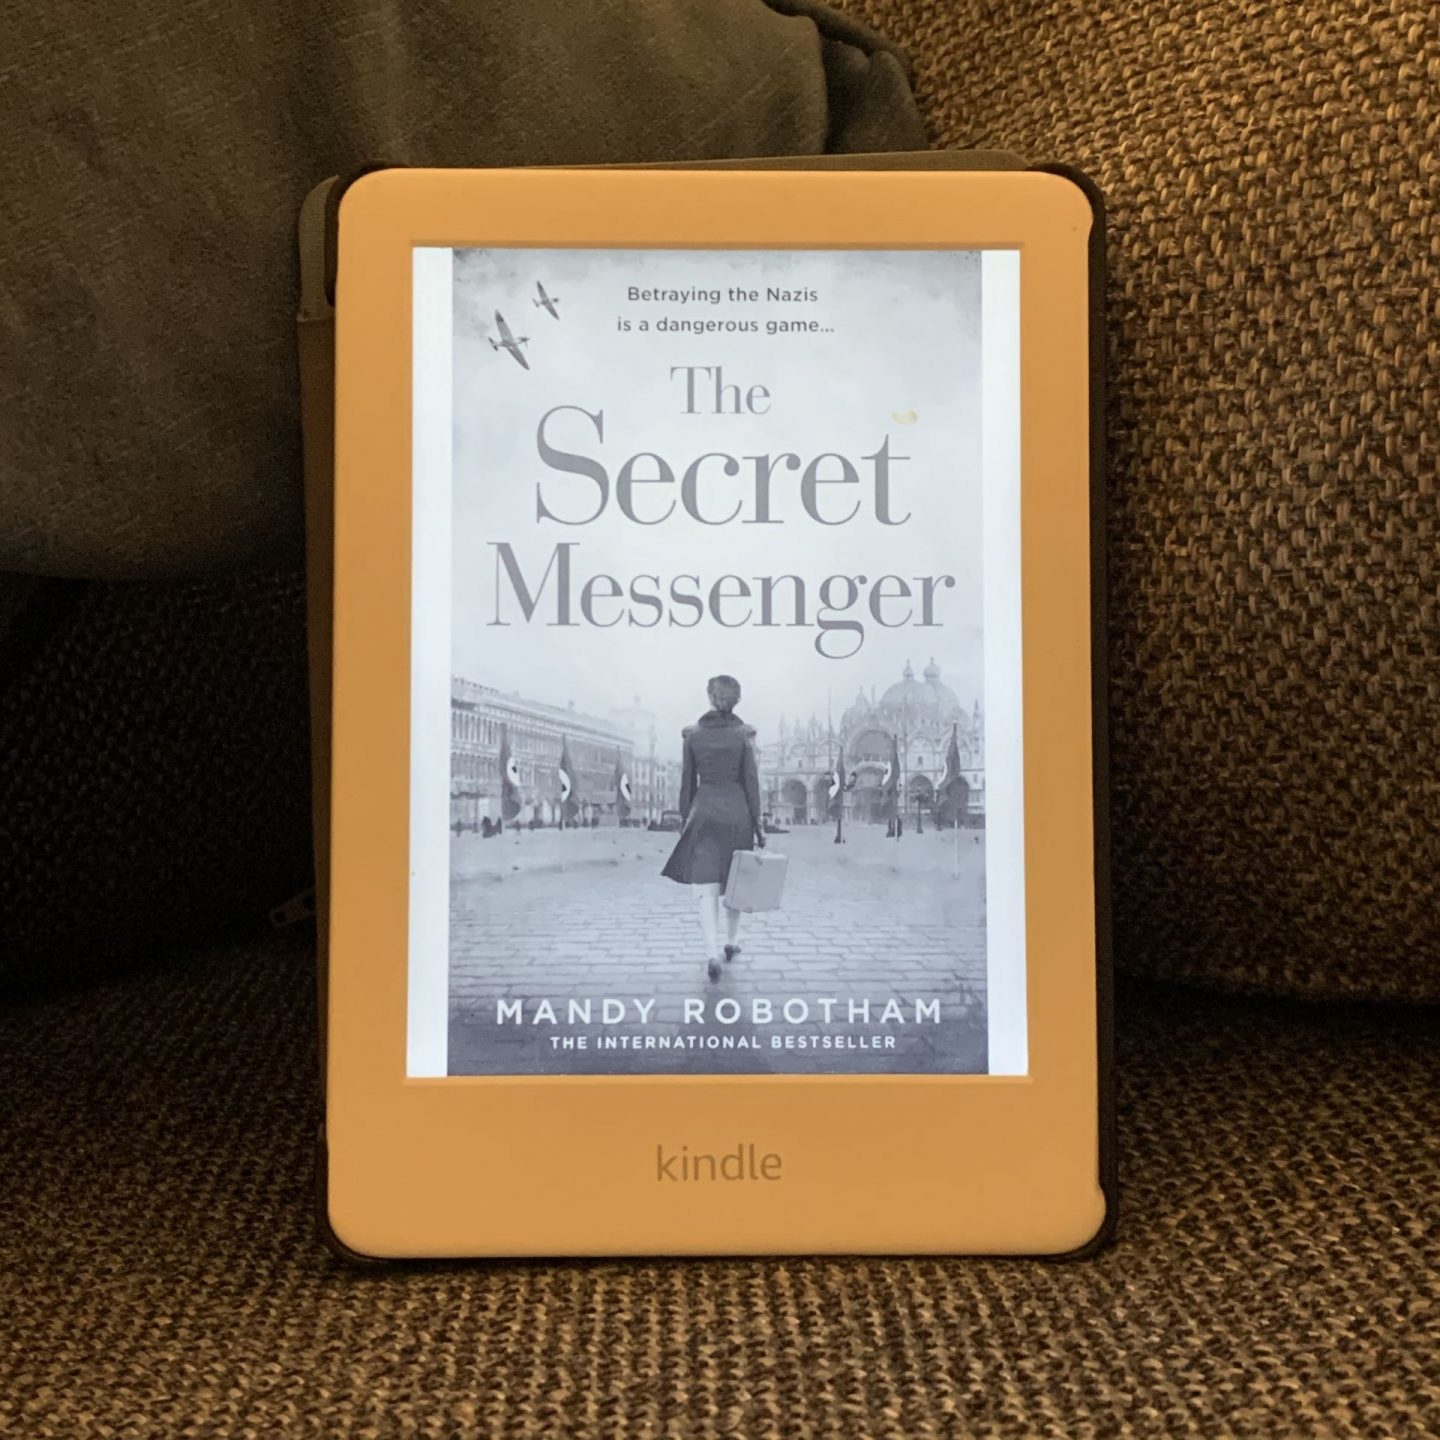 The Secret Messenger; a gripping war time read